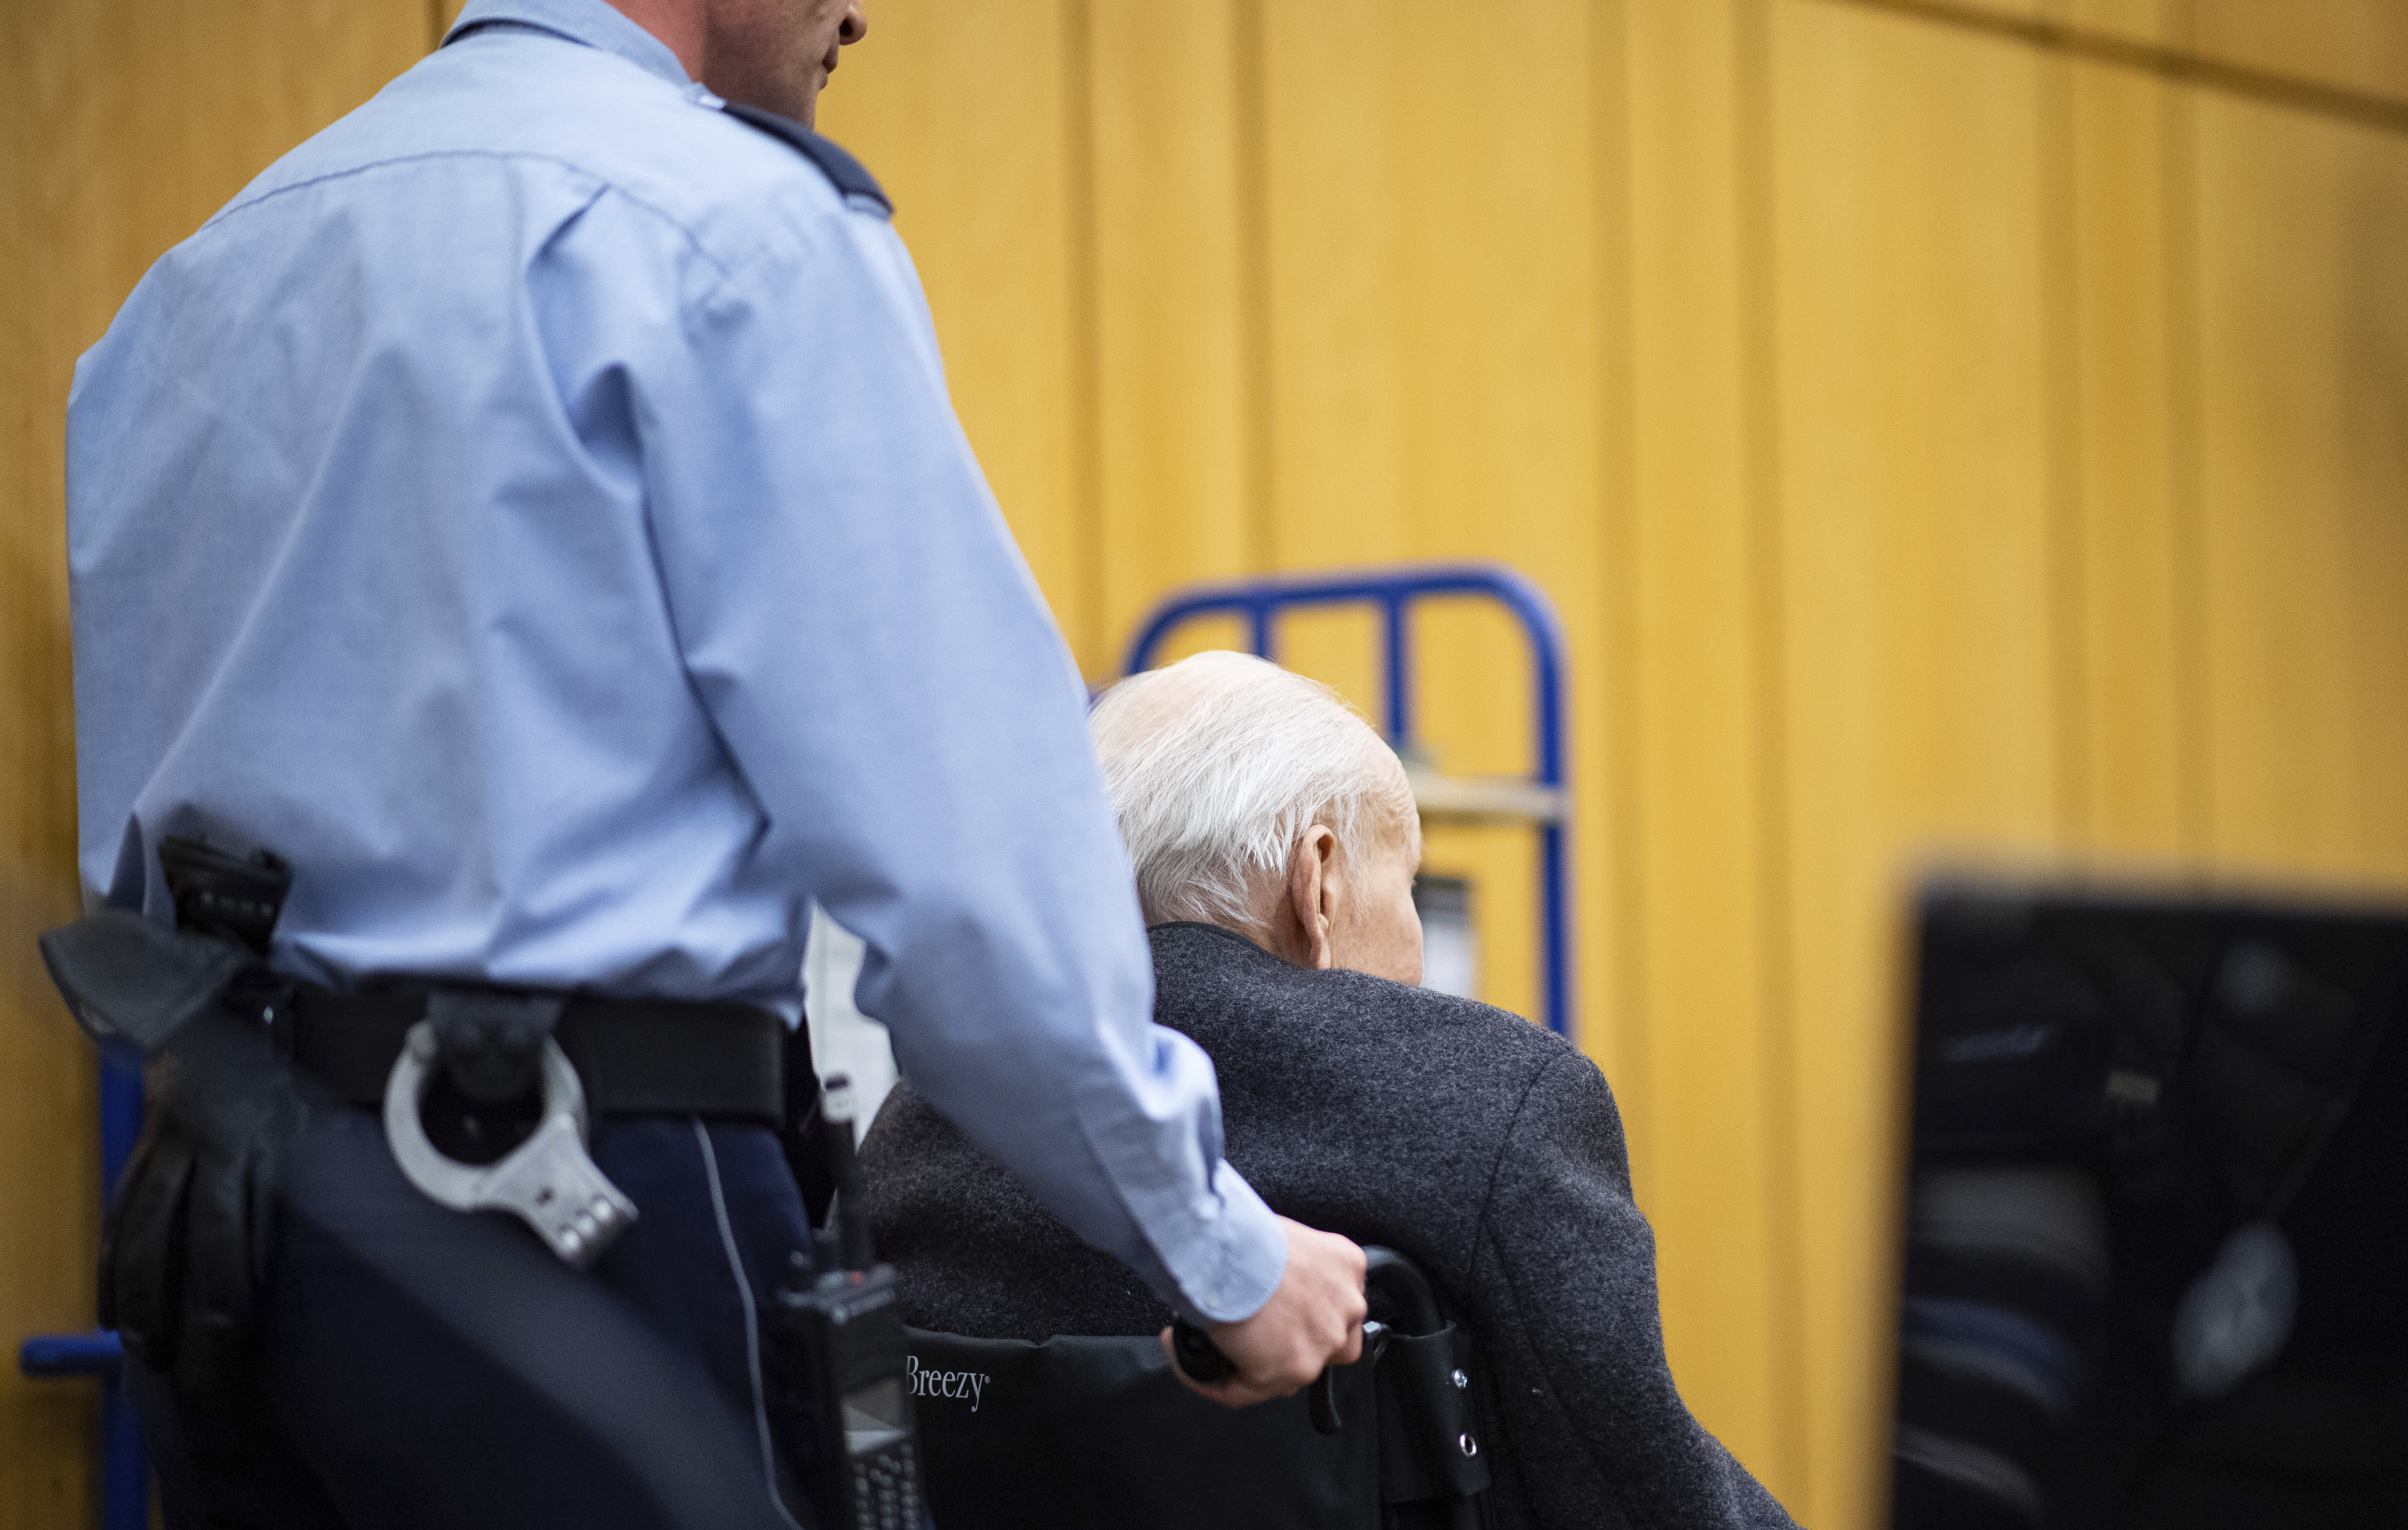 Johann Rehbogen, a 94-year-old former SS enlisted man, who is accused of hundreds of counts of accessory to murder for alleged crimes committed during the years he served as a guard at the Nazis' Stutthof concentration camp, sits in a wheelchair when arriving for the beginning of the third day of his trial at the regional court in Muenster, western Germany, Tuesday, Nov. 13, 2018. (Guido Kirchner/pool photo via AP)